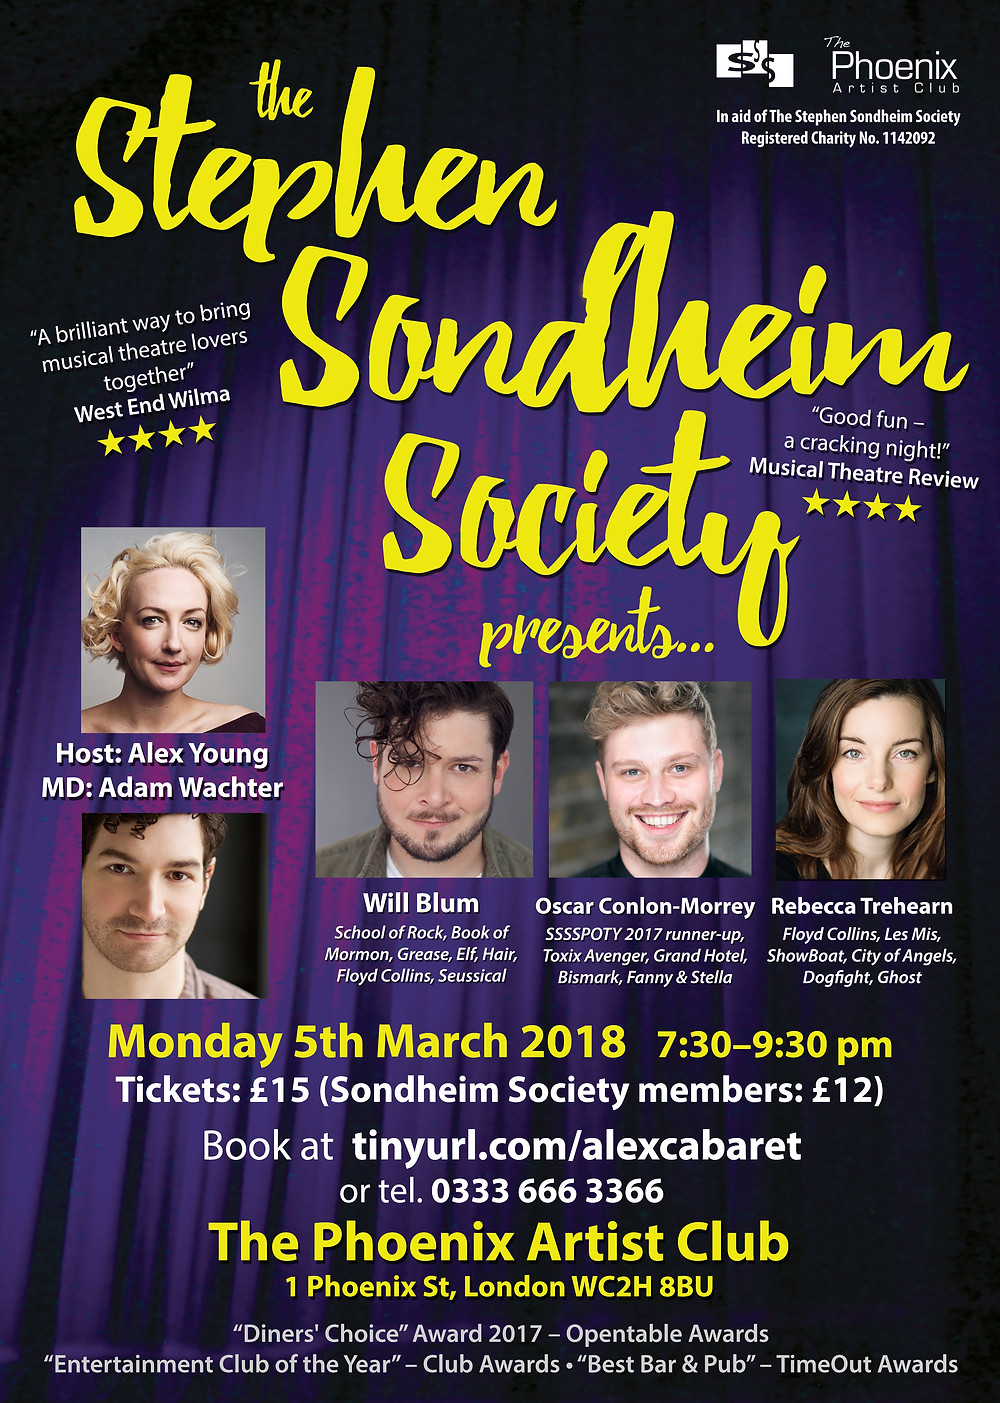 Oscar at The Stephen Sondheim Society Presents... in March 2018